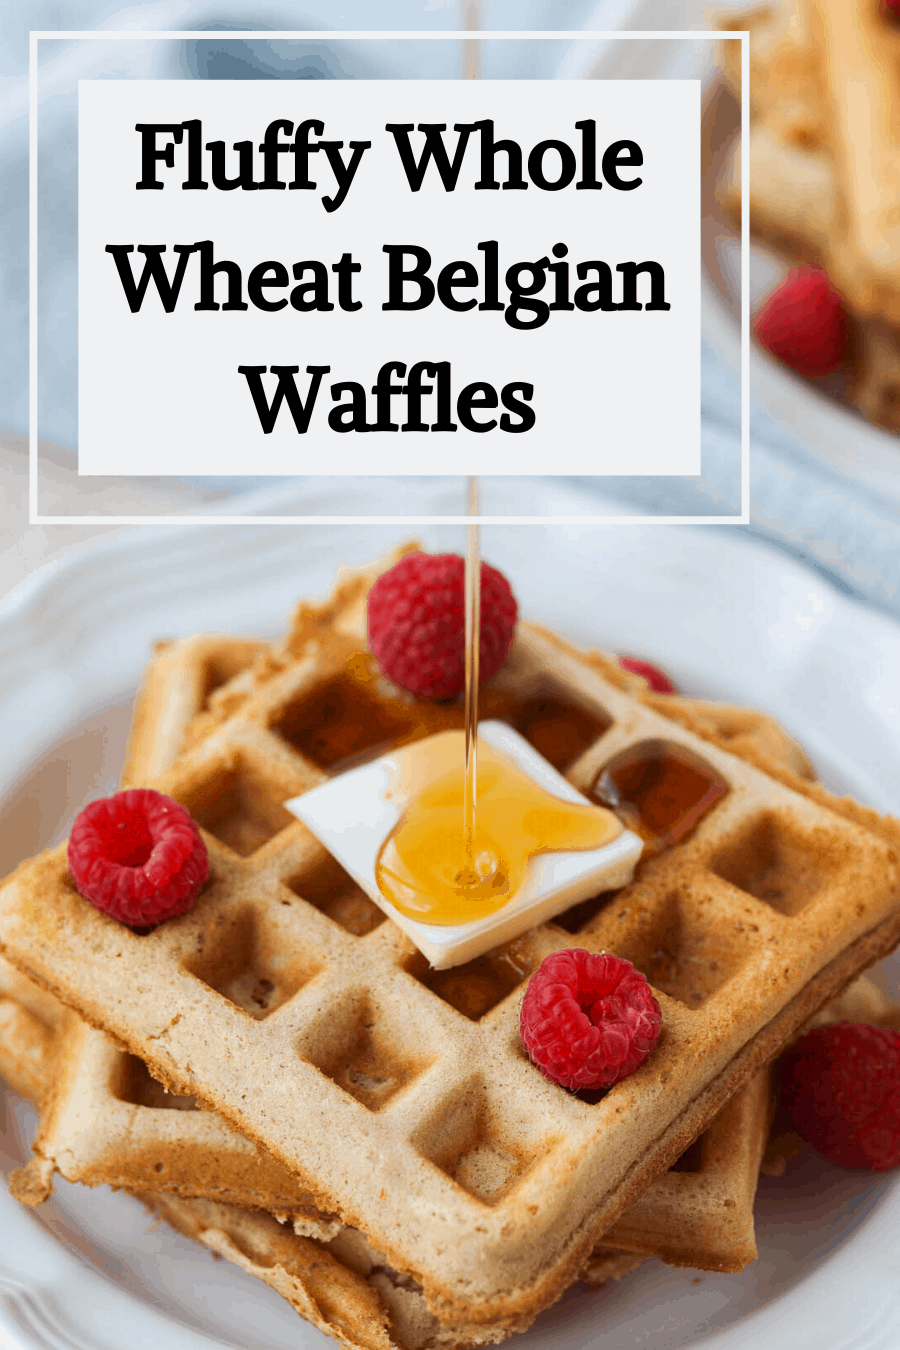 Pinterest pin for whole wheat waffles with maple syrup on top of waffles.